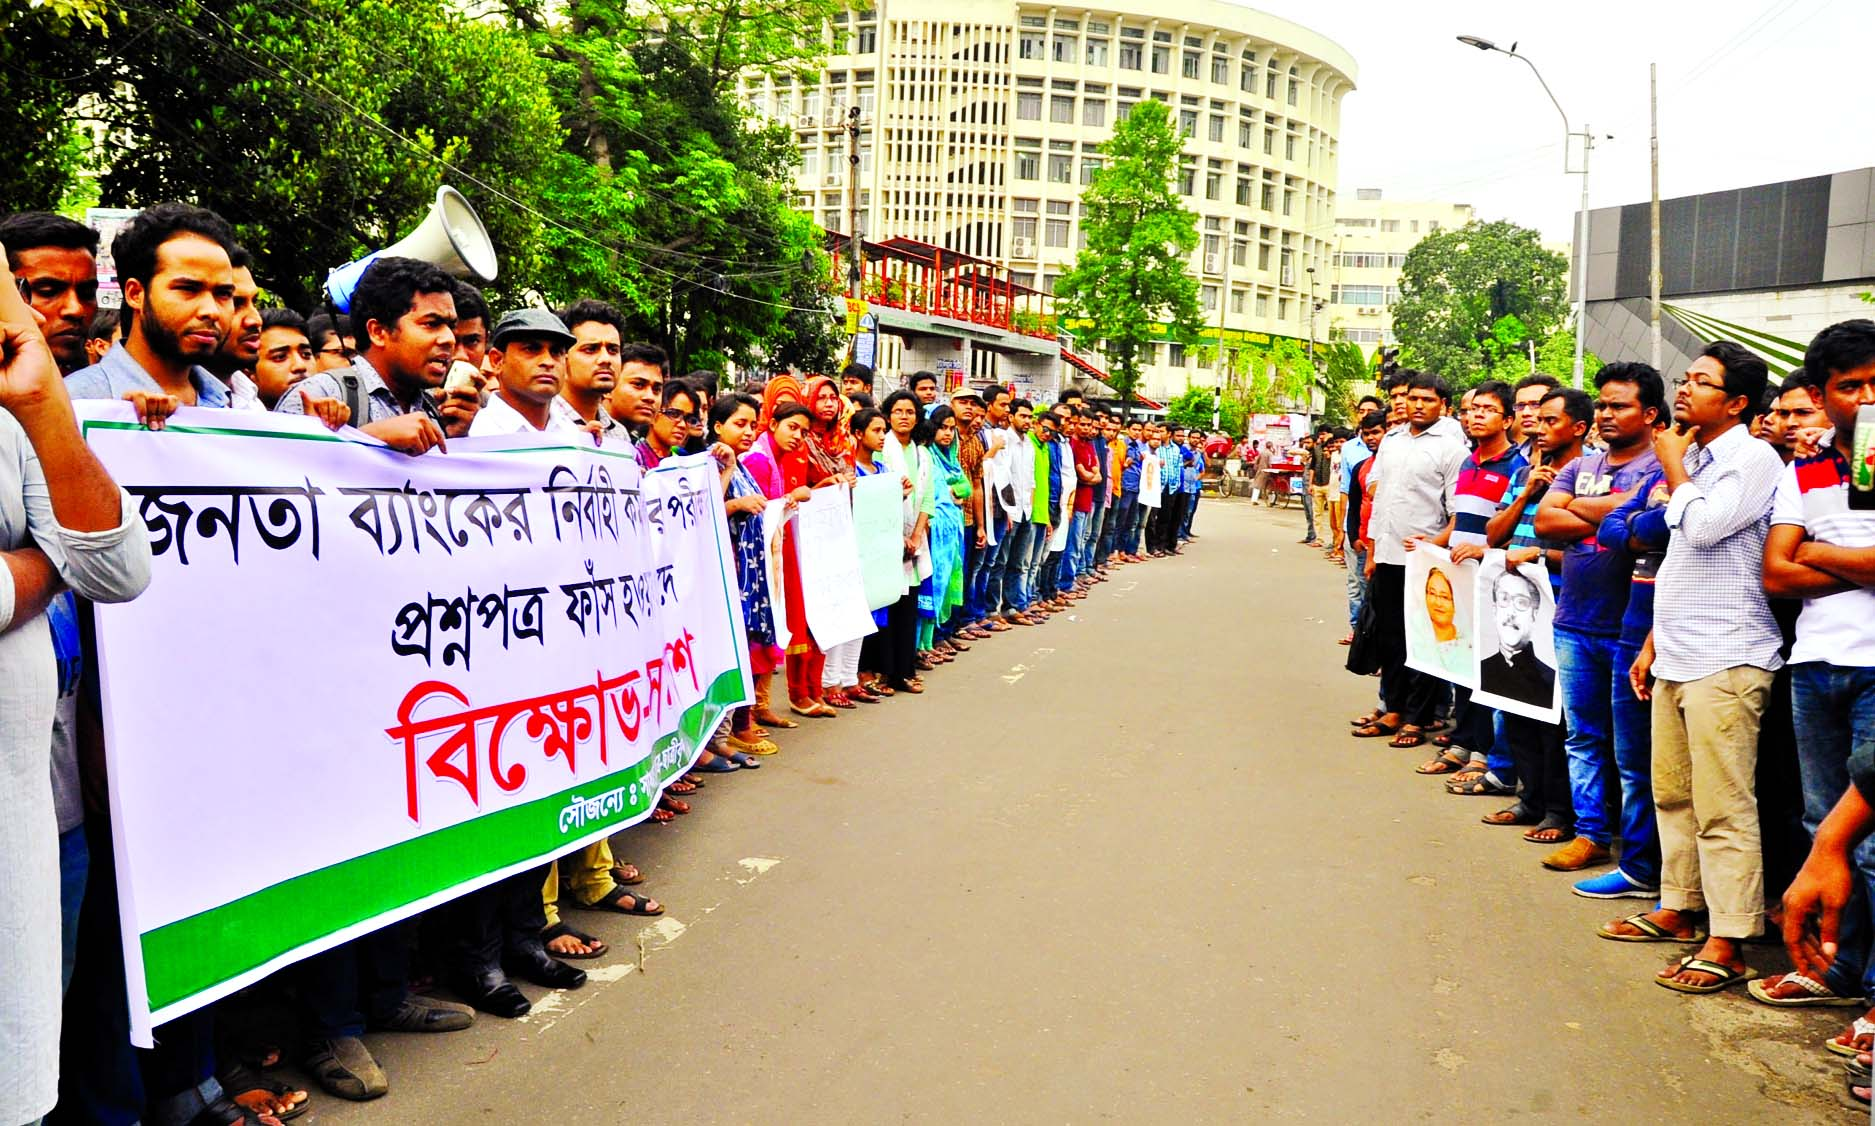 General students formed a human chain in front of the National Museum in the city on Monday in protest against leakage of question papers for the examination of executive officials of Janata Bank.